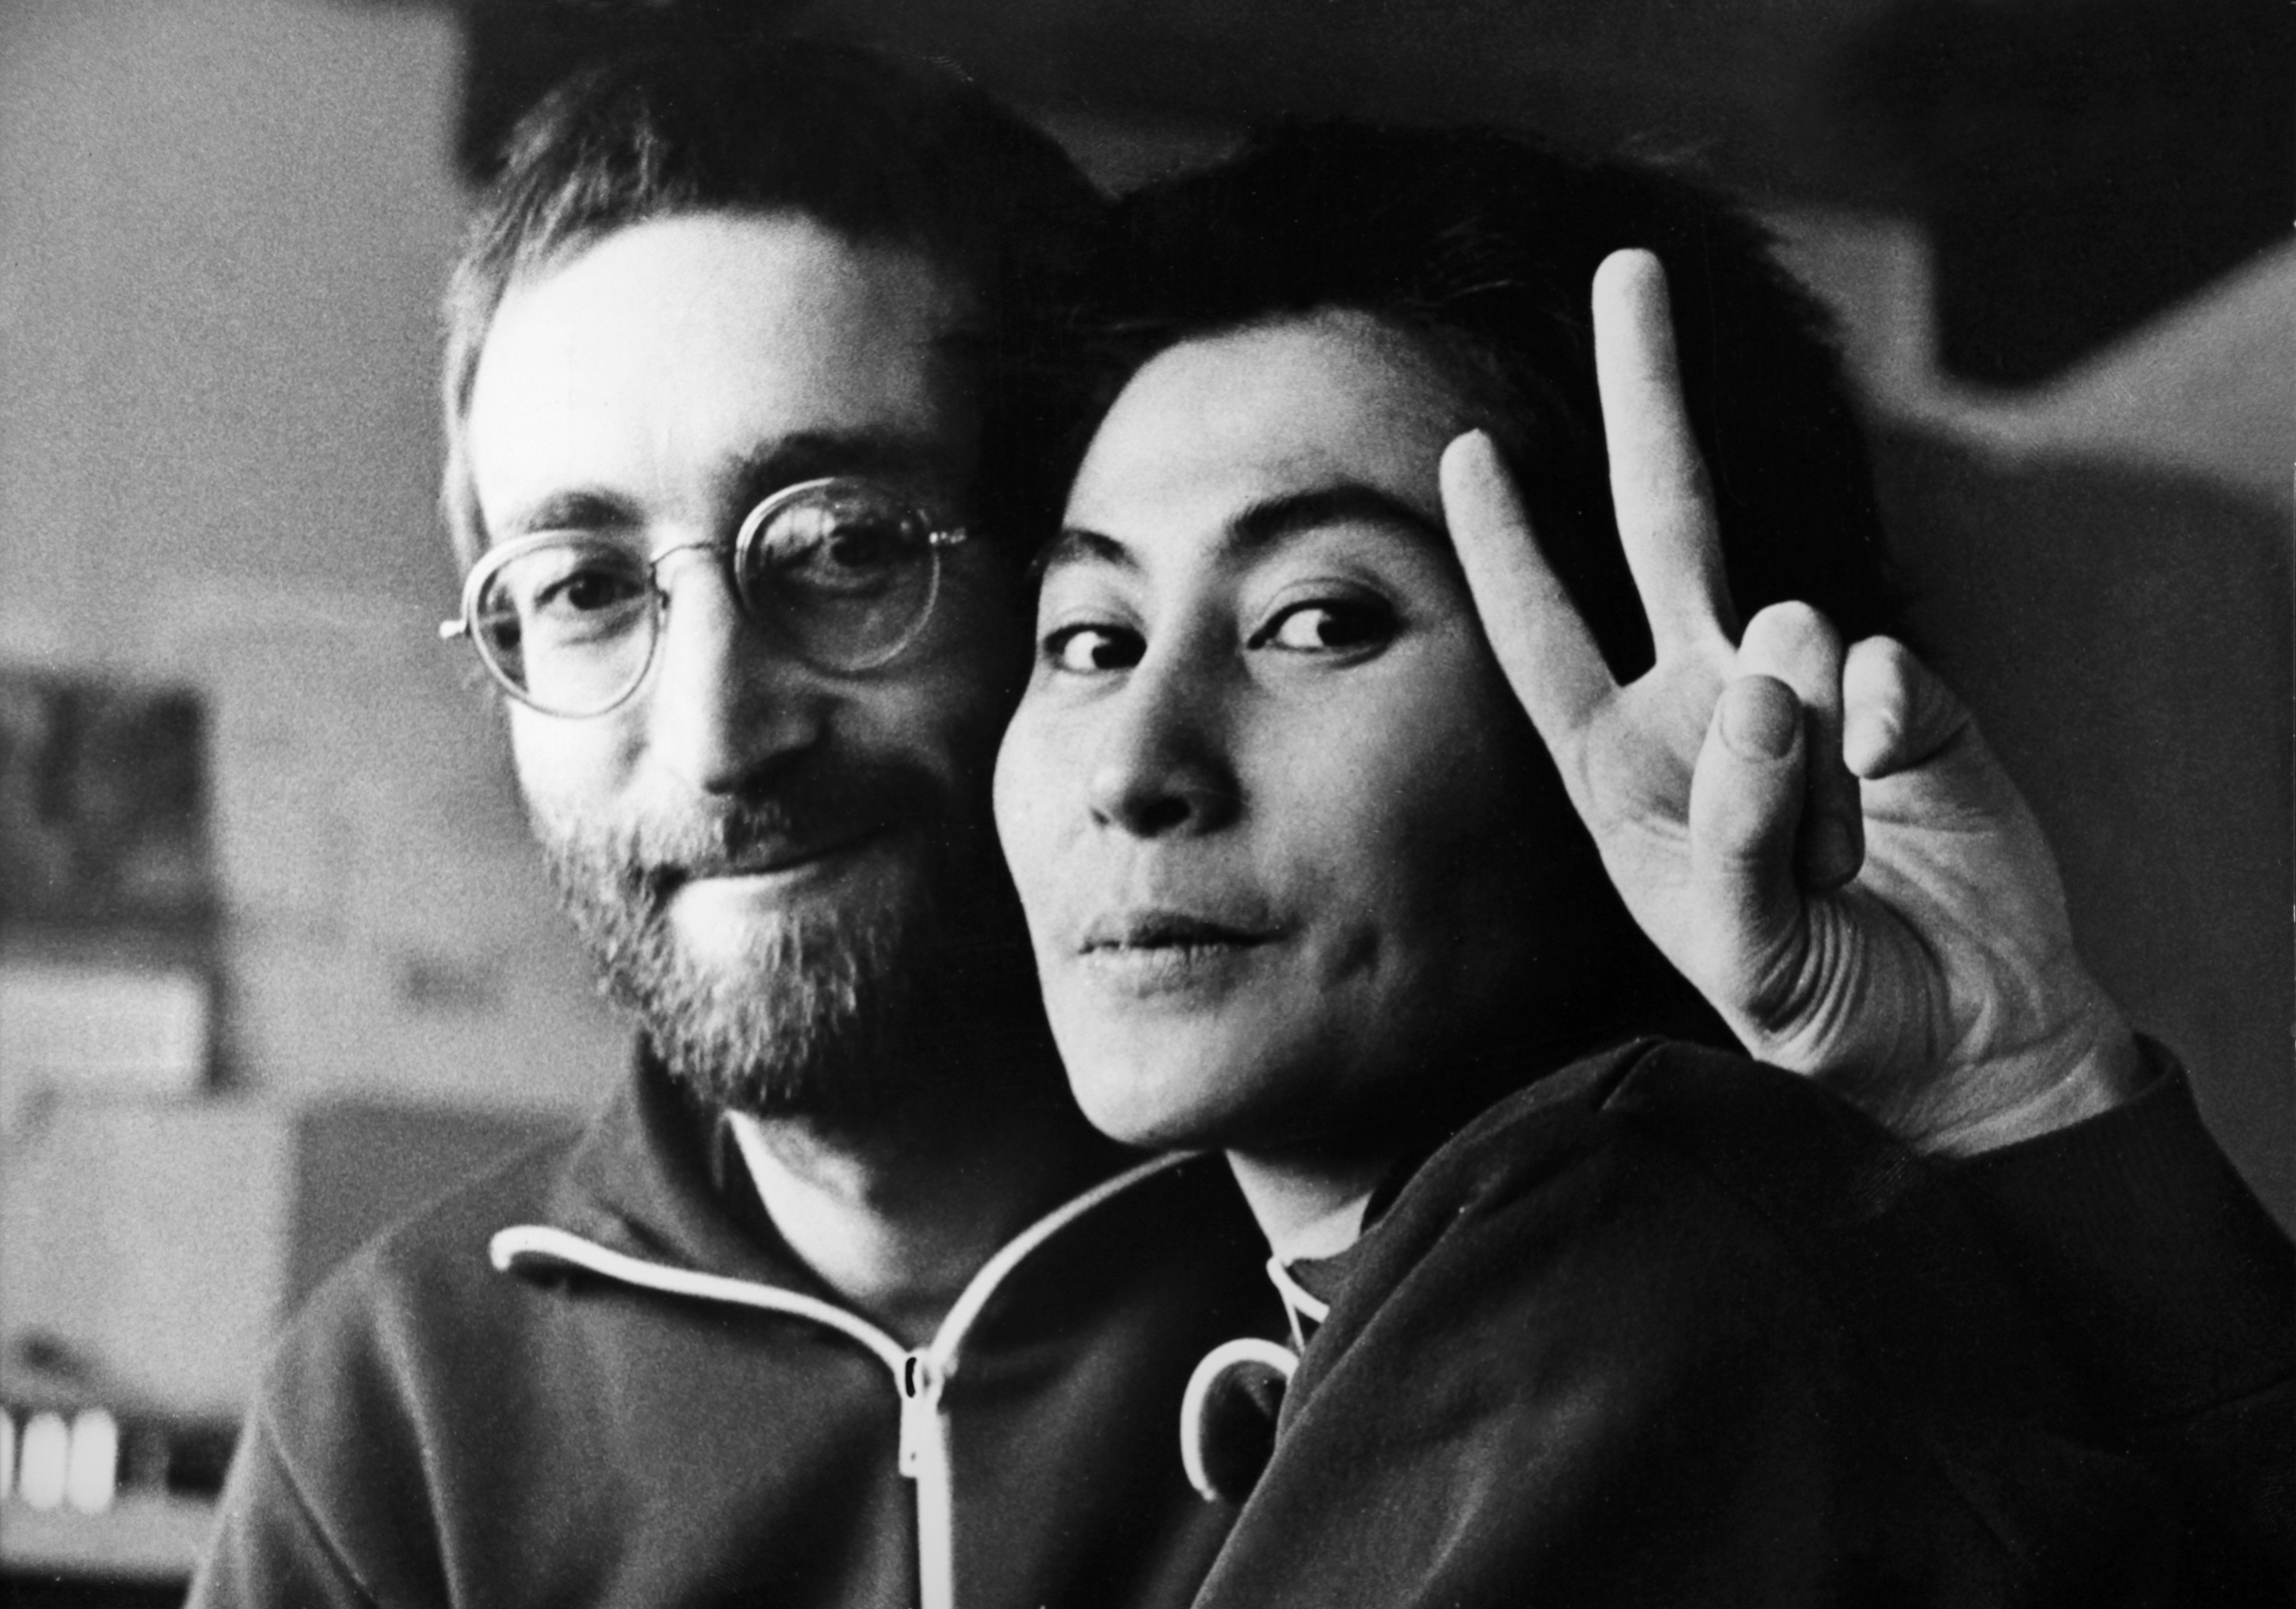 JUTLAND, DENMARK - JANUARY 22: 1st appearance of John Lennon and Yoko Ono with short hair at Vust Peace Center, where the couple is living in meditation on January 22, 1970 in Jutland, Denmark. (Photo by Keystone-France/Gamma-Rapho via Getty Images)